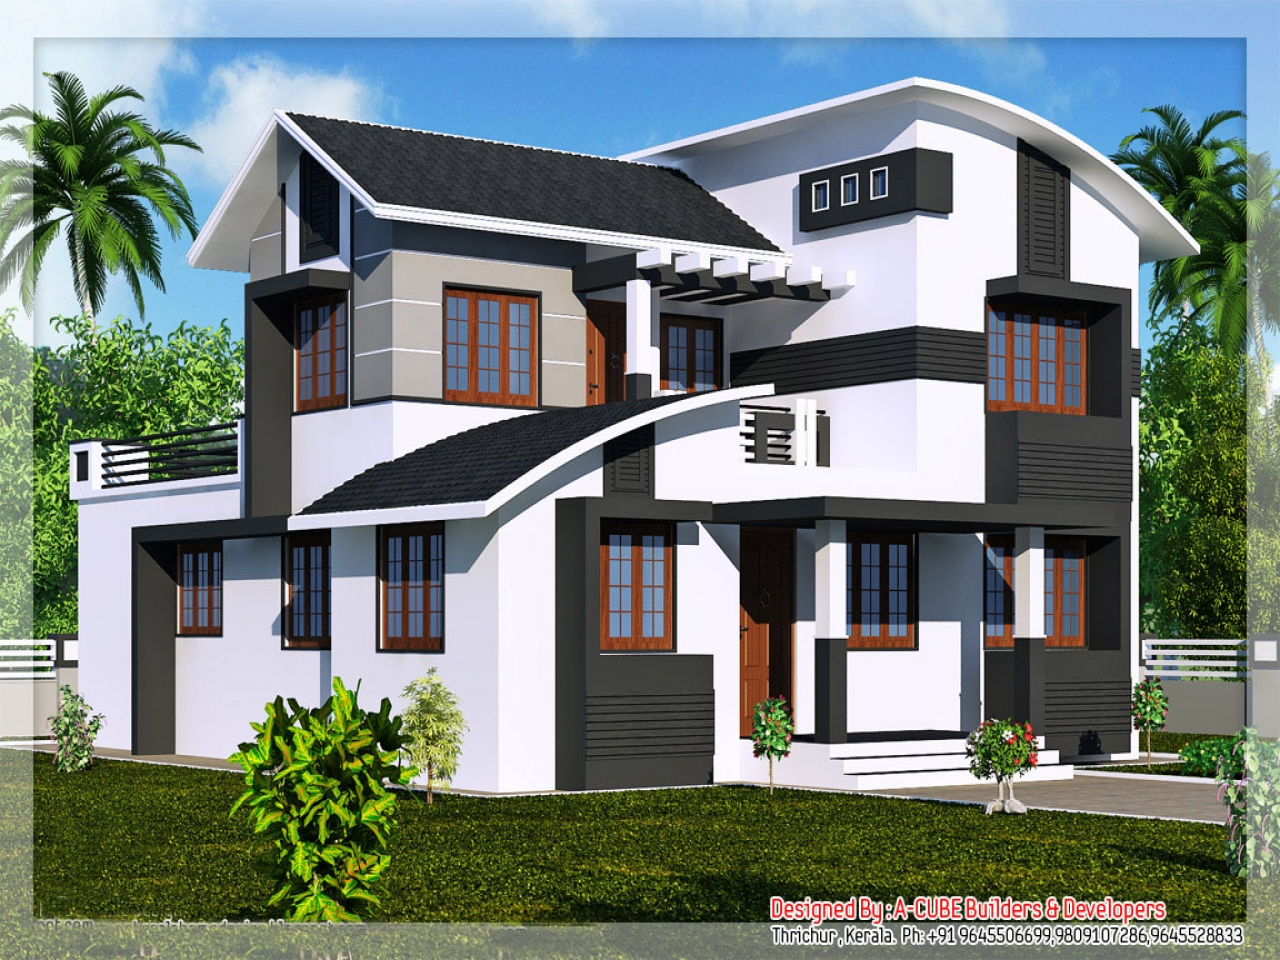 india duplex house design duplex house plans and designs ForDesign Duplex House Architecture India